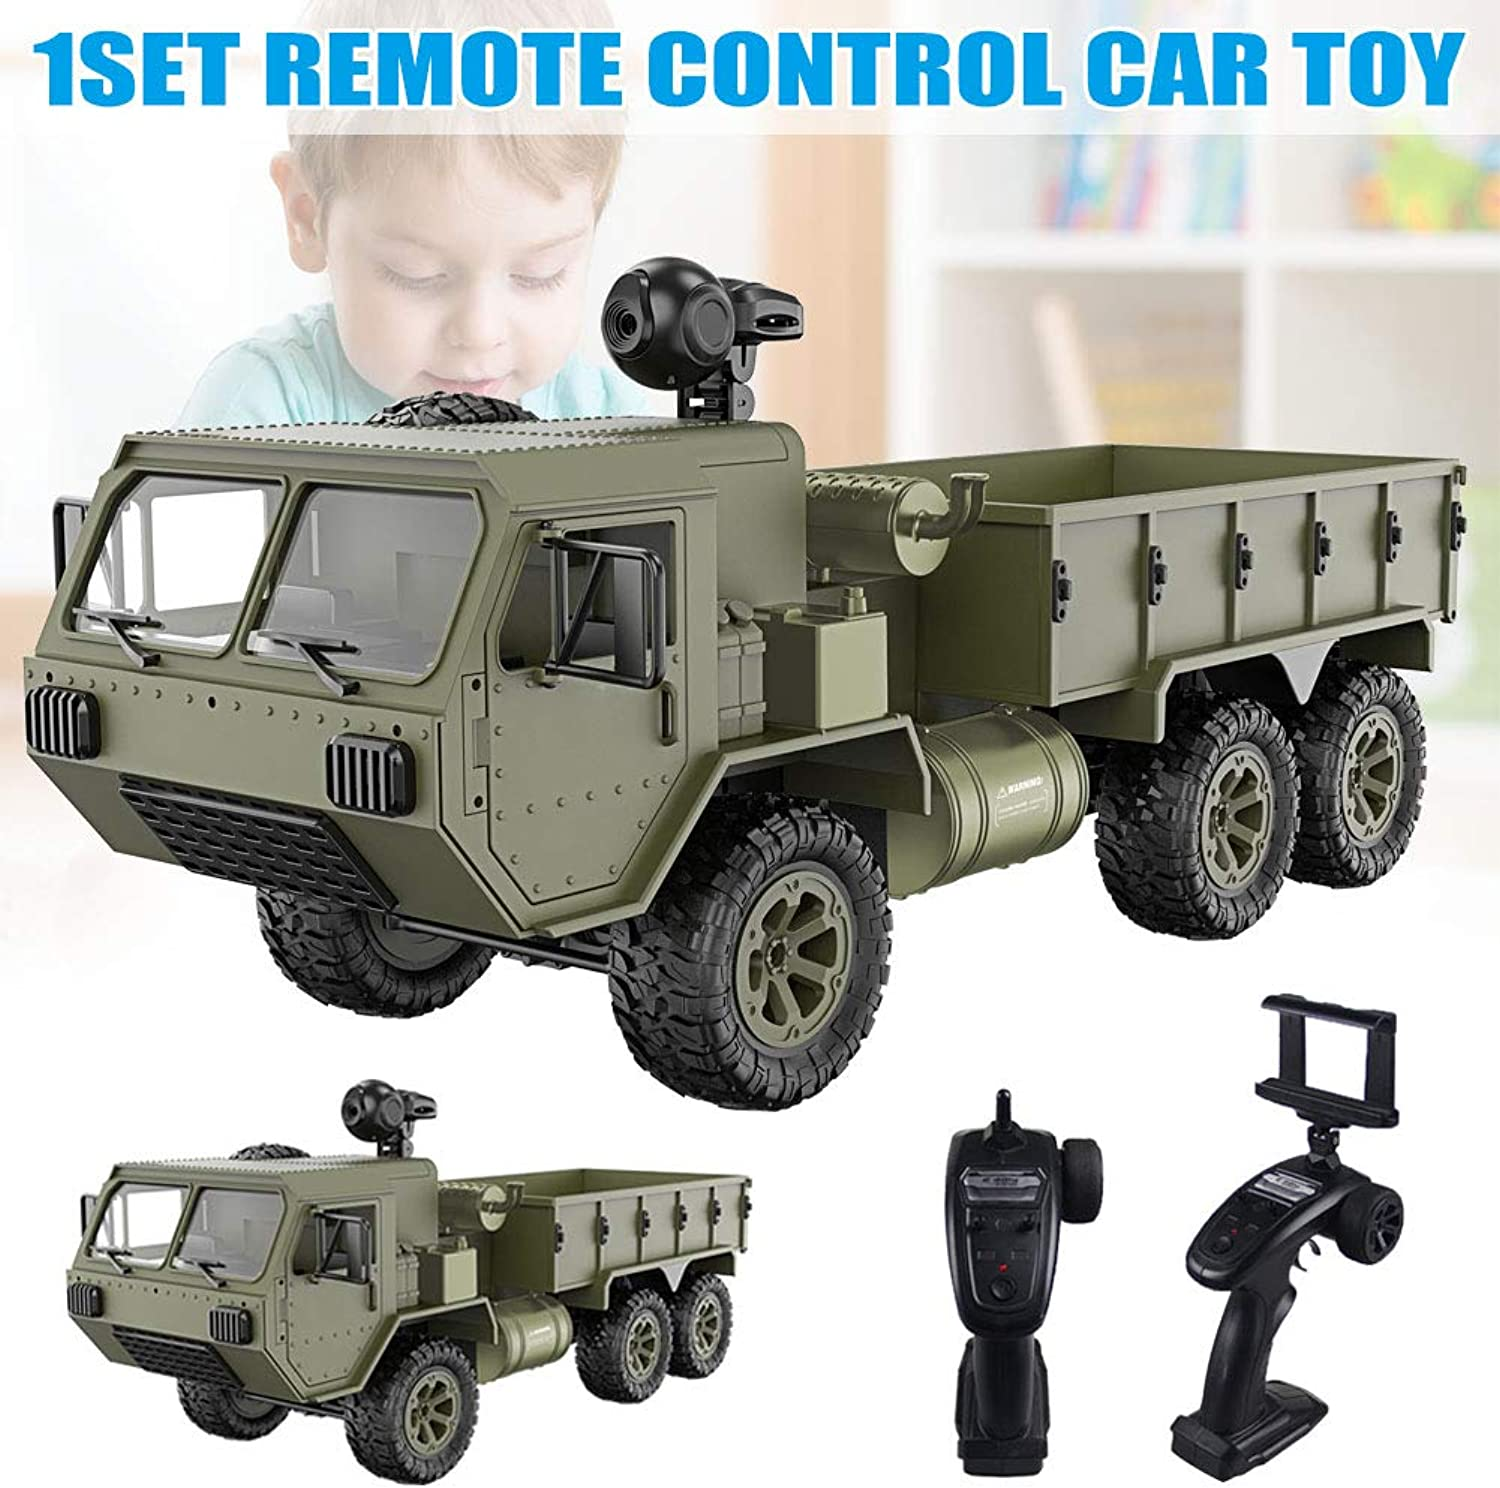 1 16 2.4G 6WD RC Car Proportional Control Army Military Truck Model Toys Foviza Kids Gift